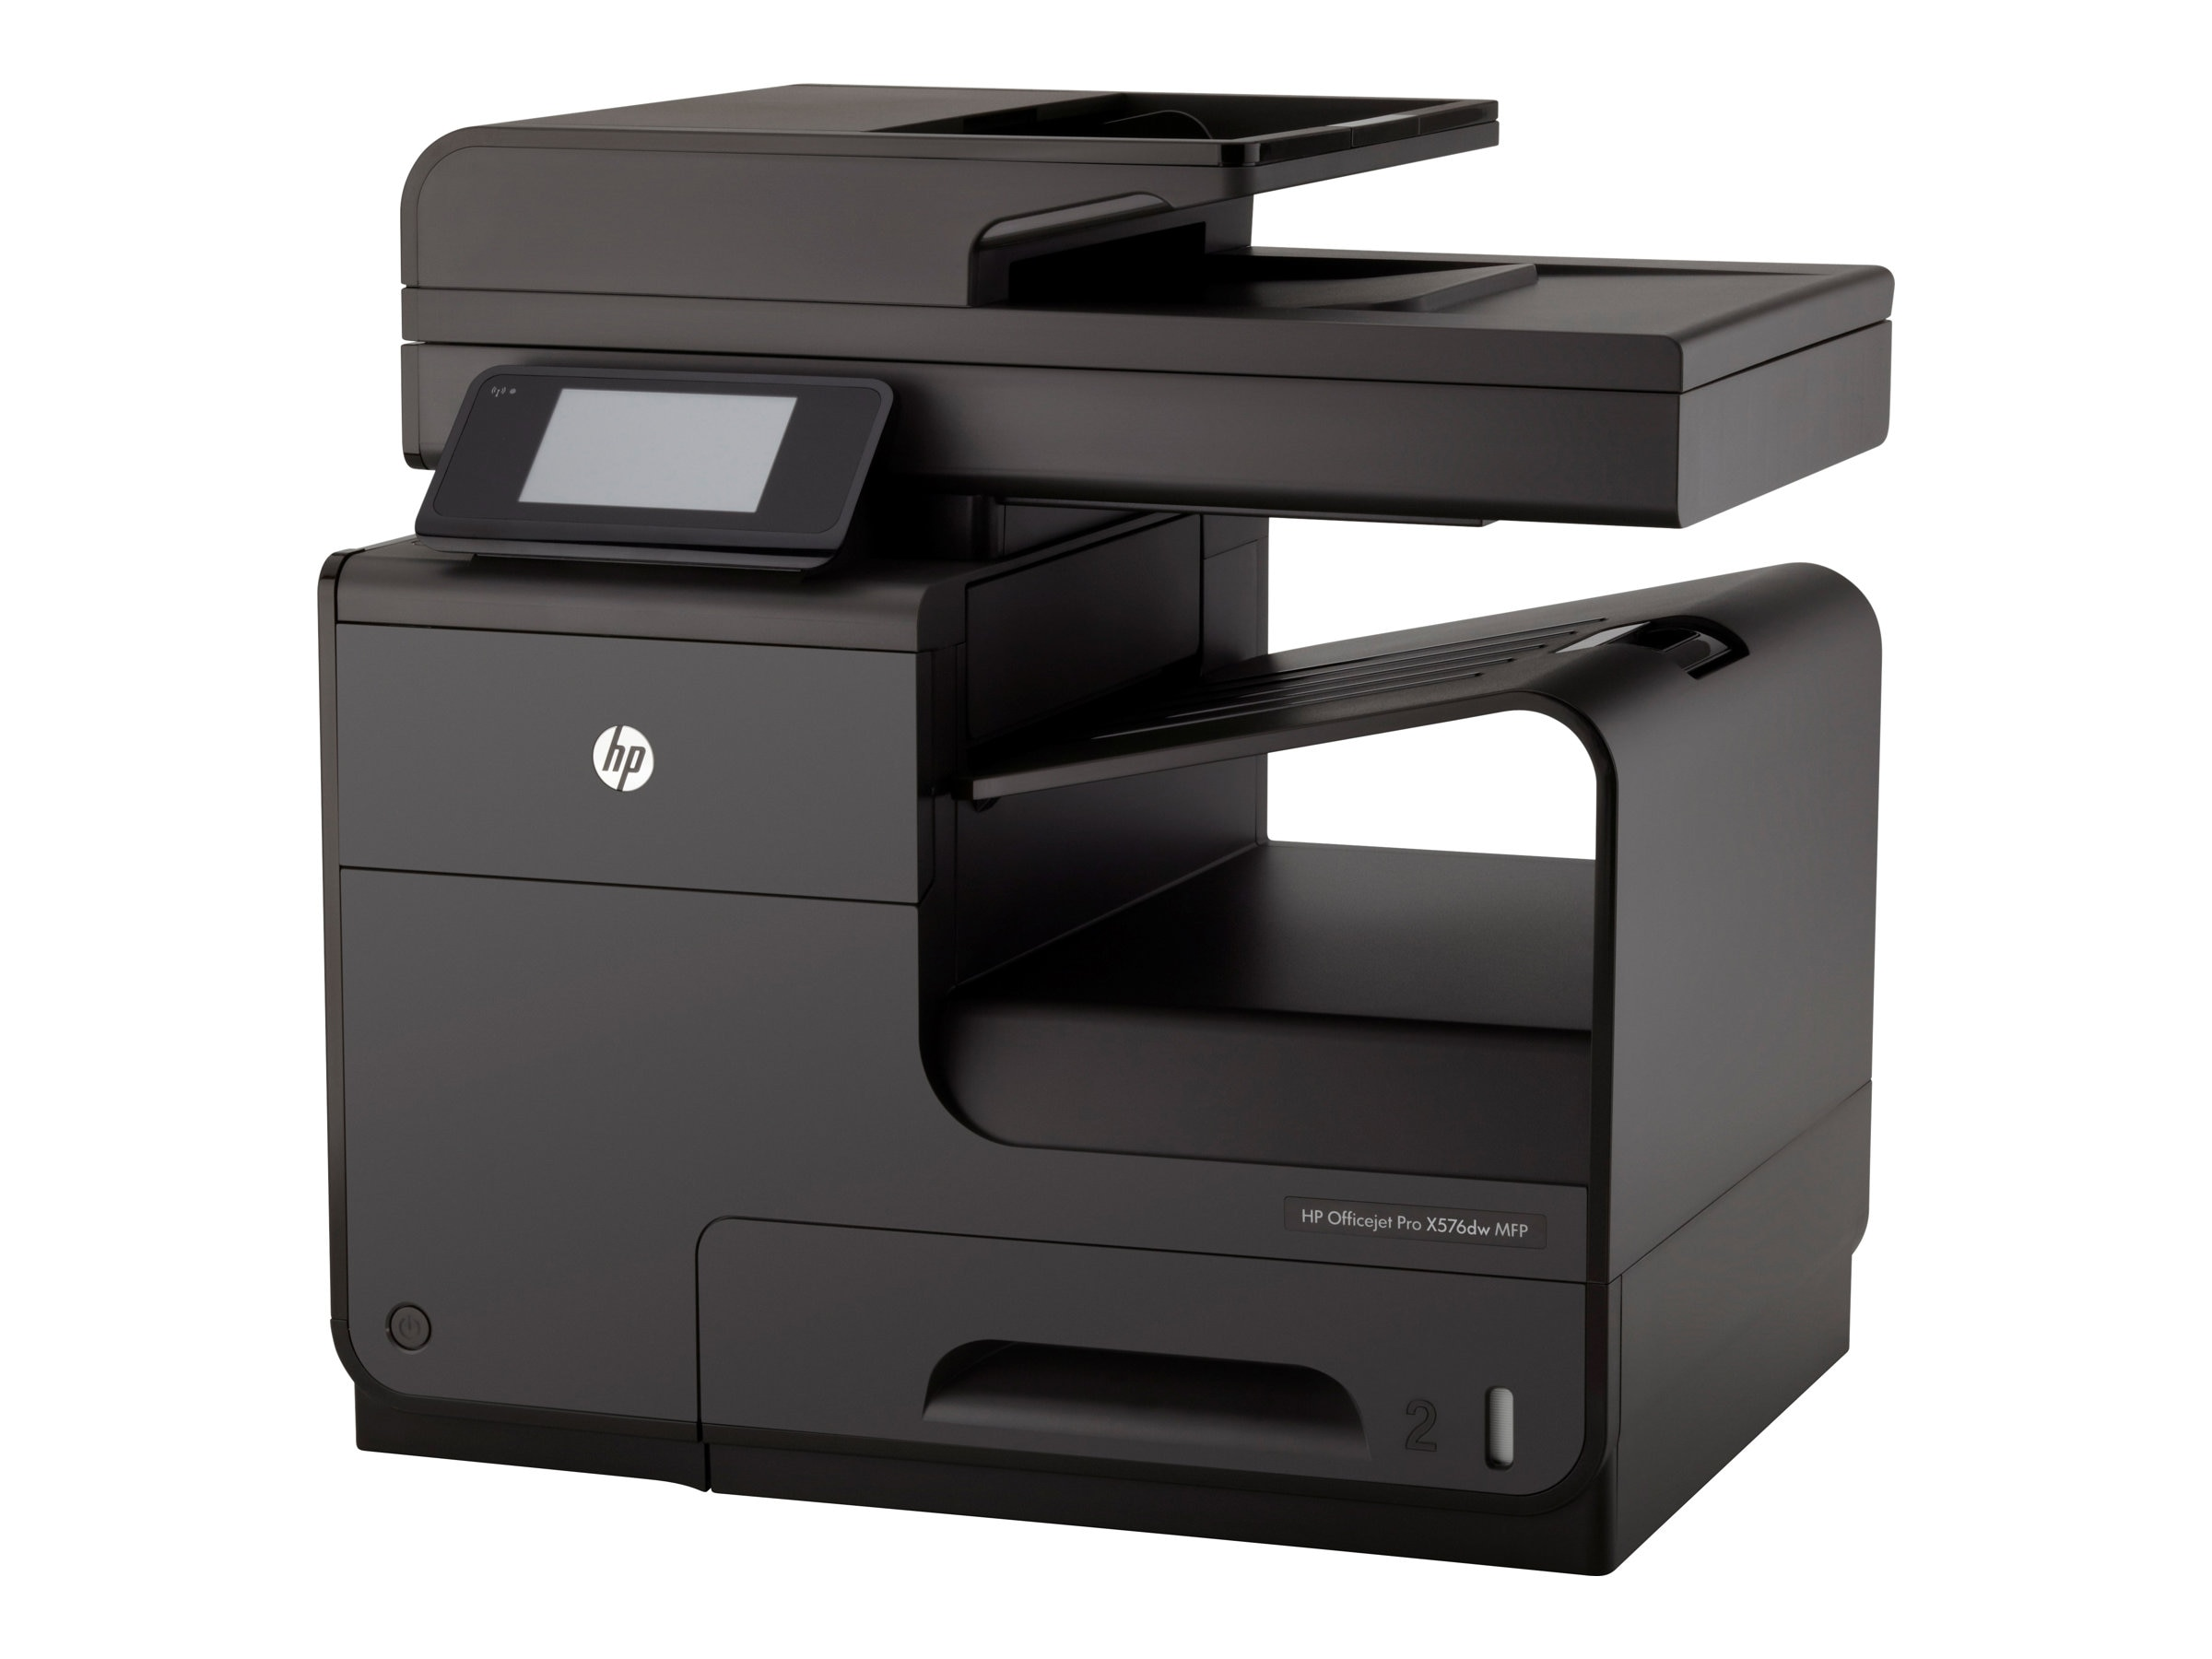 HP Officejet Pro X Series X576dw Color MFP $799 - $240 instant rebate = $559 Expires 2 29 16, CN598A#B1H, 15056816, MultiFunction - Ink-Jet